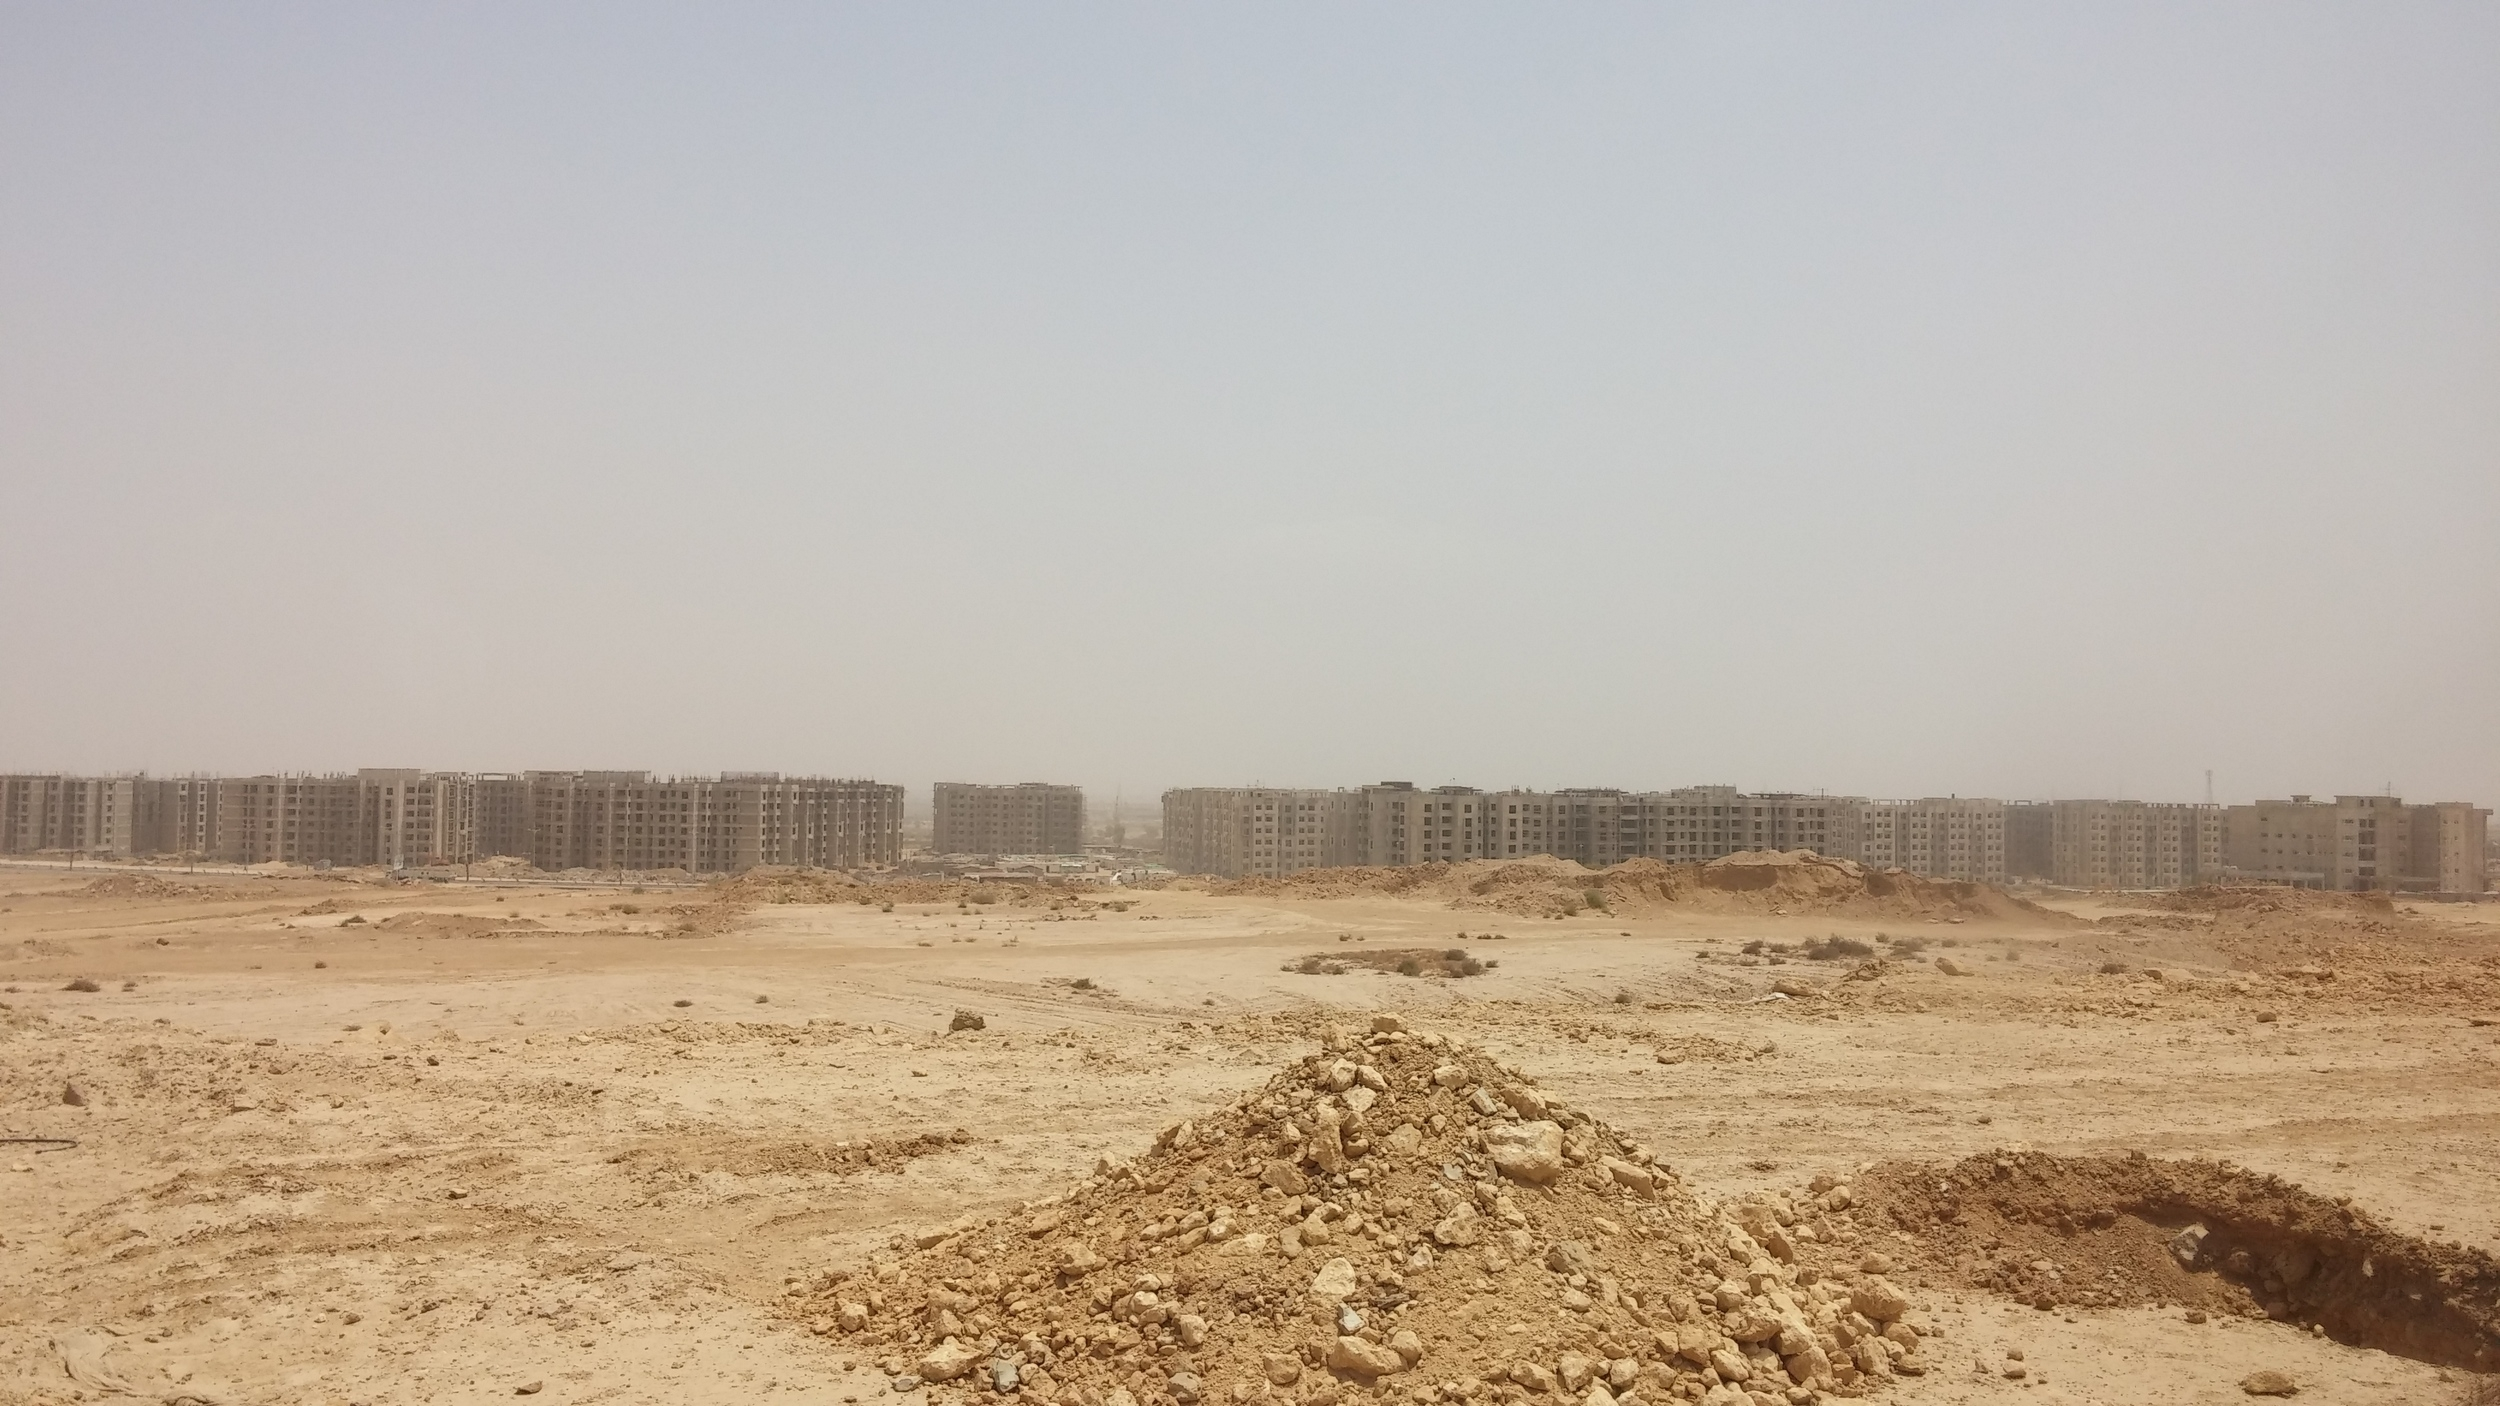 A view of Bahria Town's apartment complexes under construction. Image courtesy Basil Andrews.